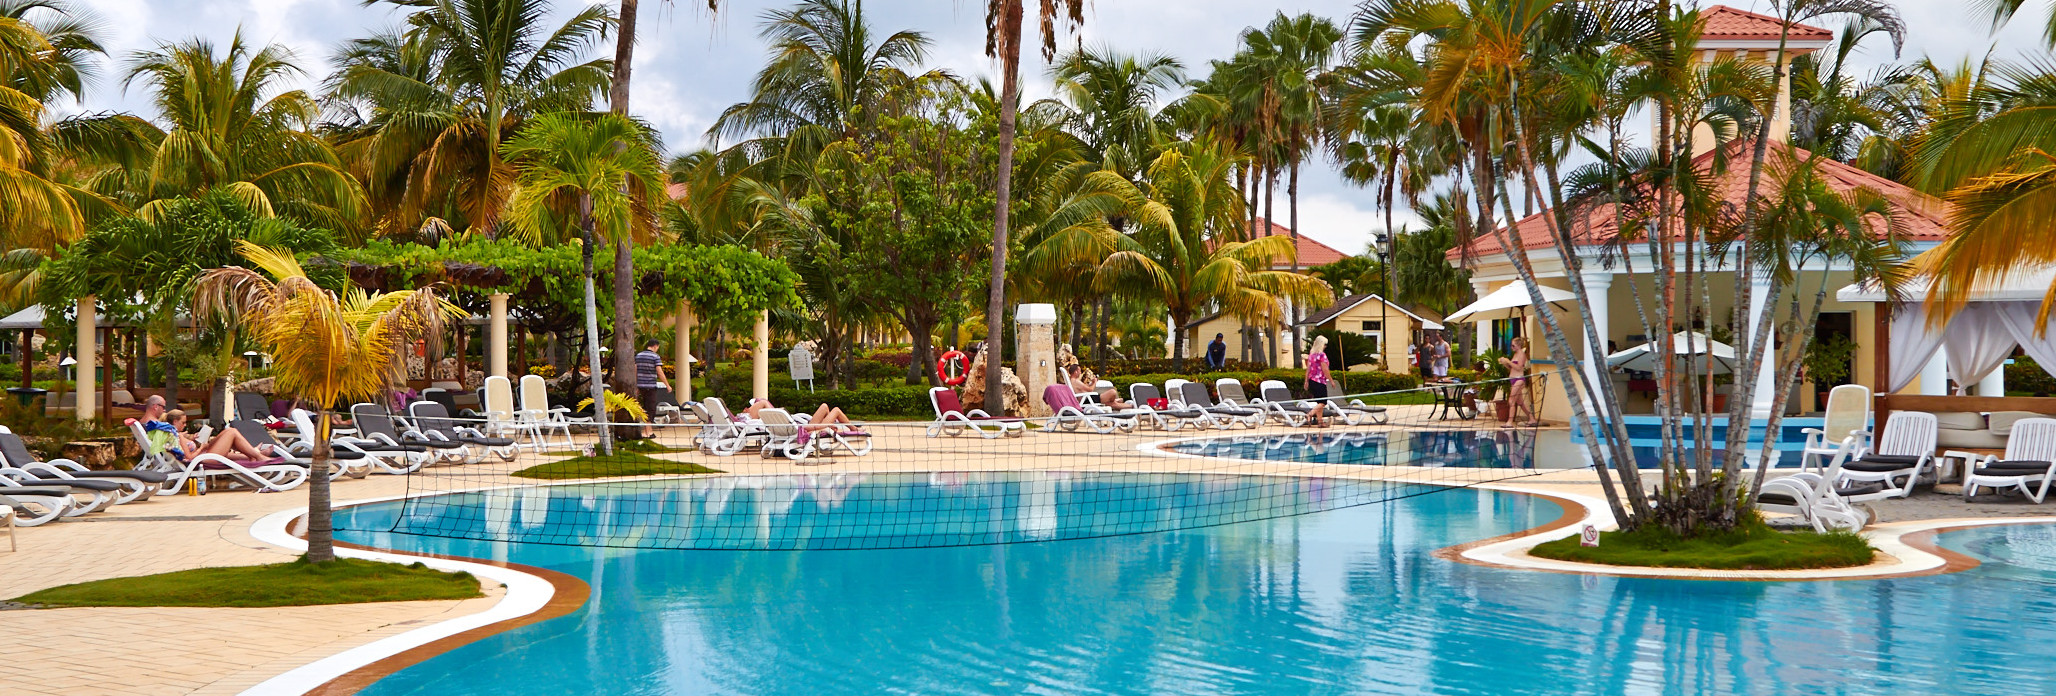 Cuban holidays devastated by sickness at the Paradisus Princesa del Mar